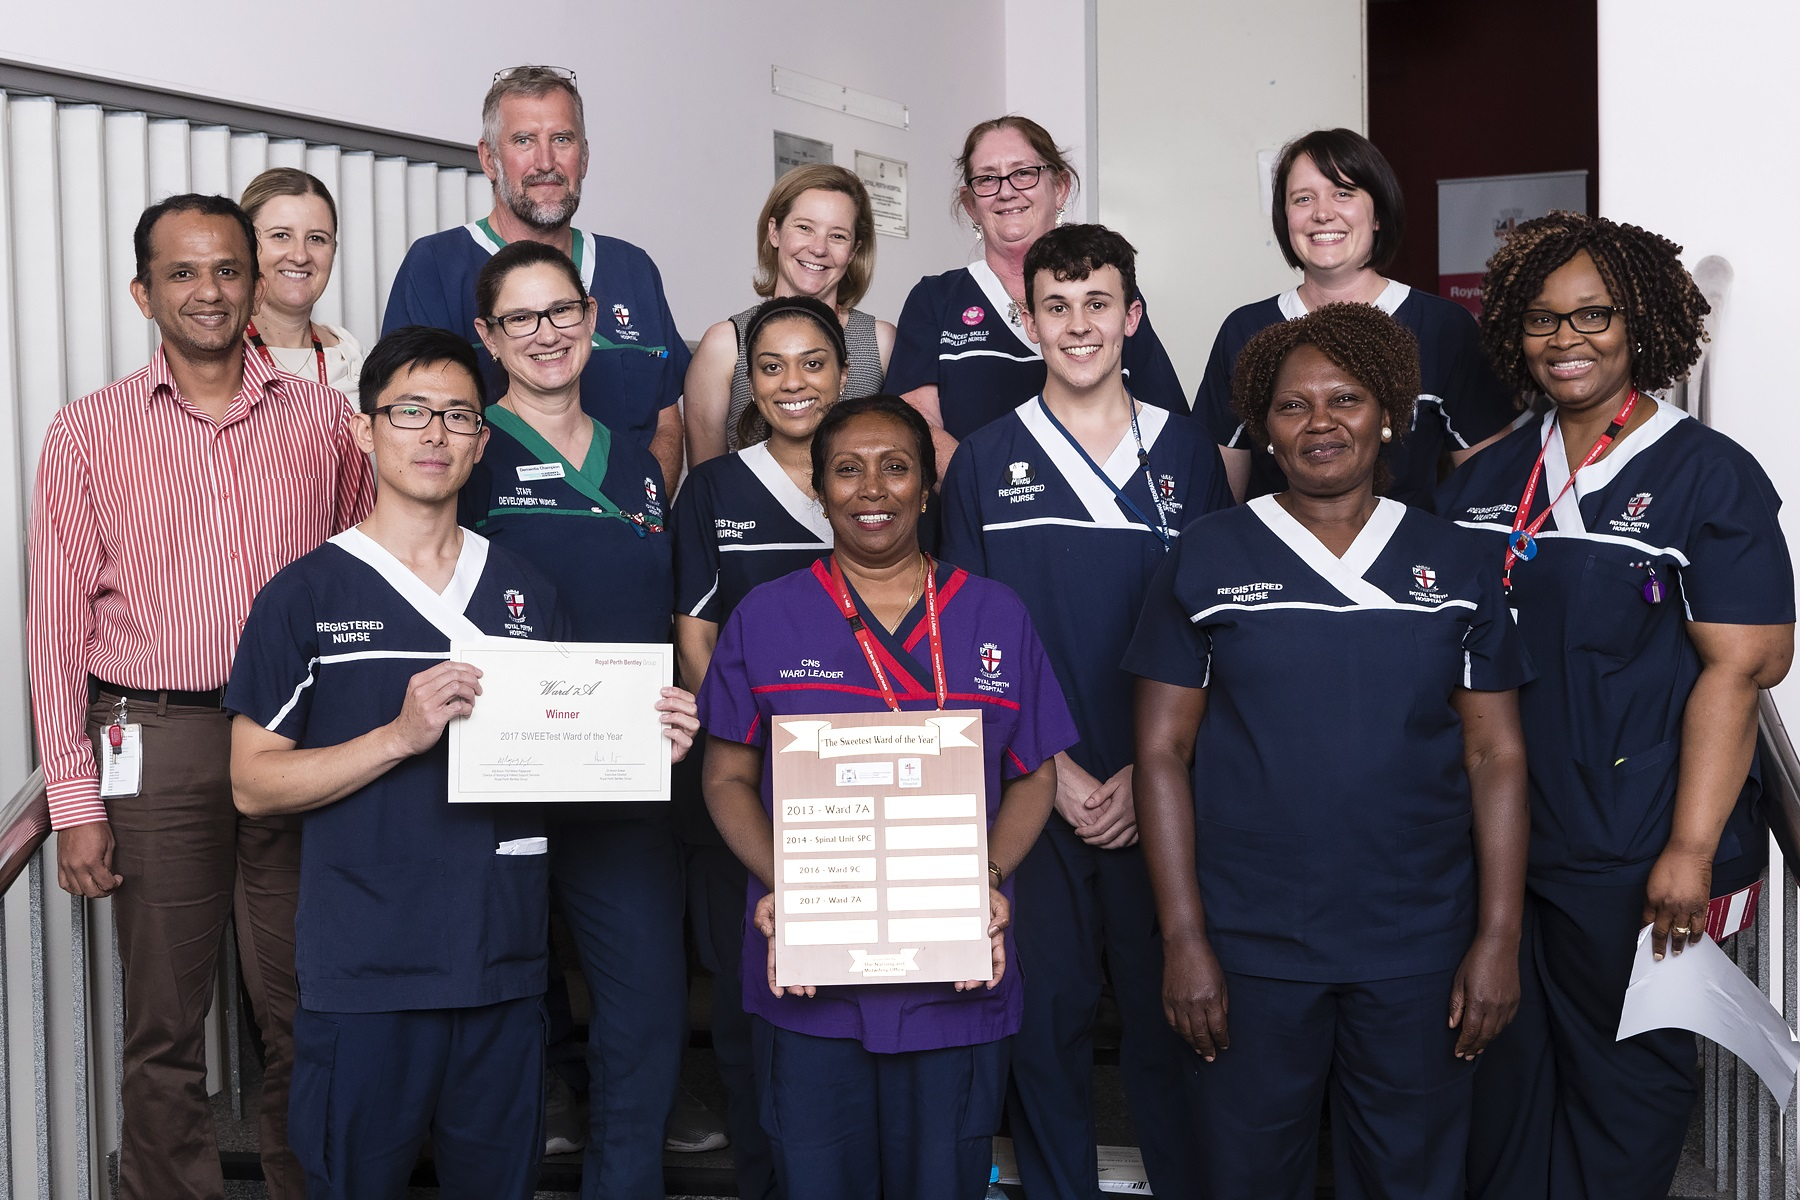 Photograph of 2017 RPBG Nursing Awards winners